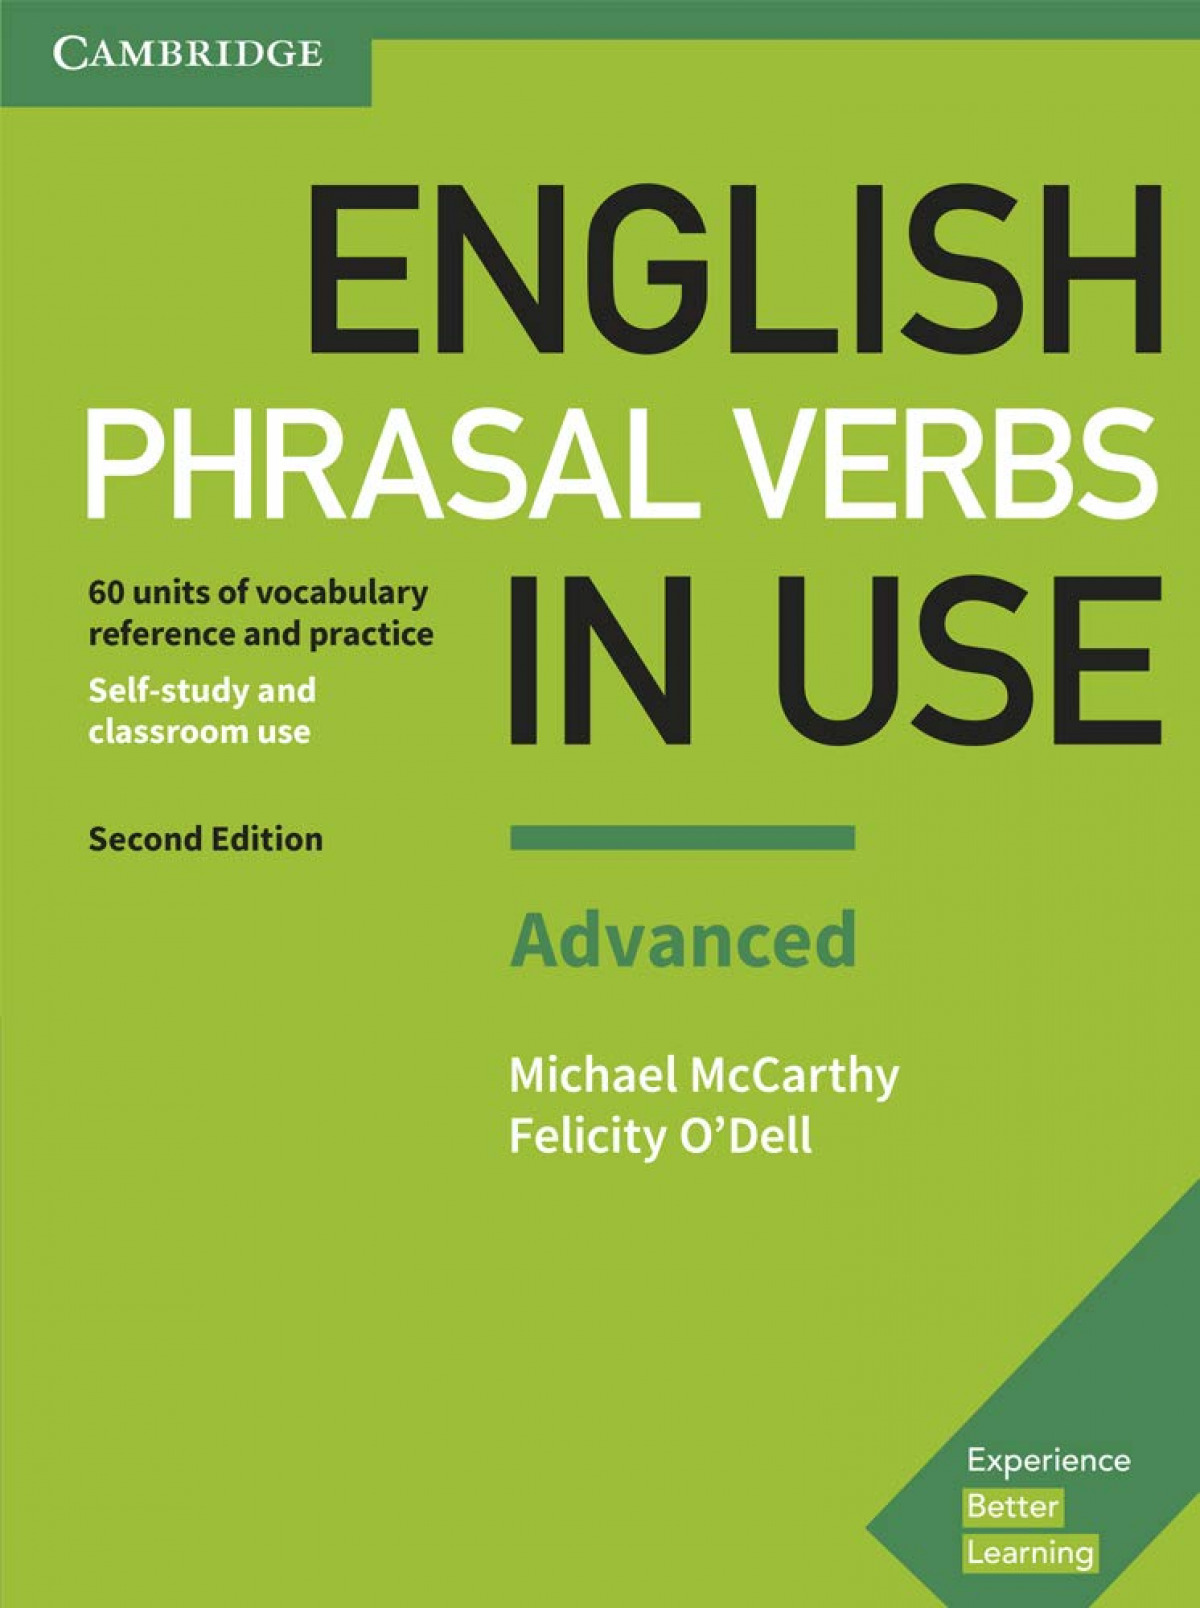 English Phrasal Verbs in Use Advanced with Key Second Edition 2017